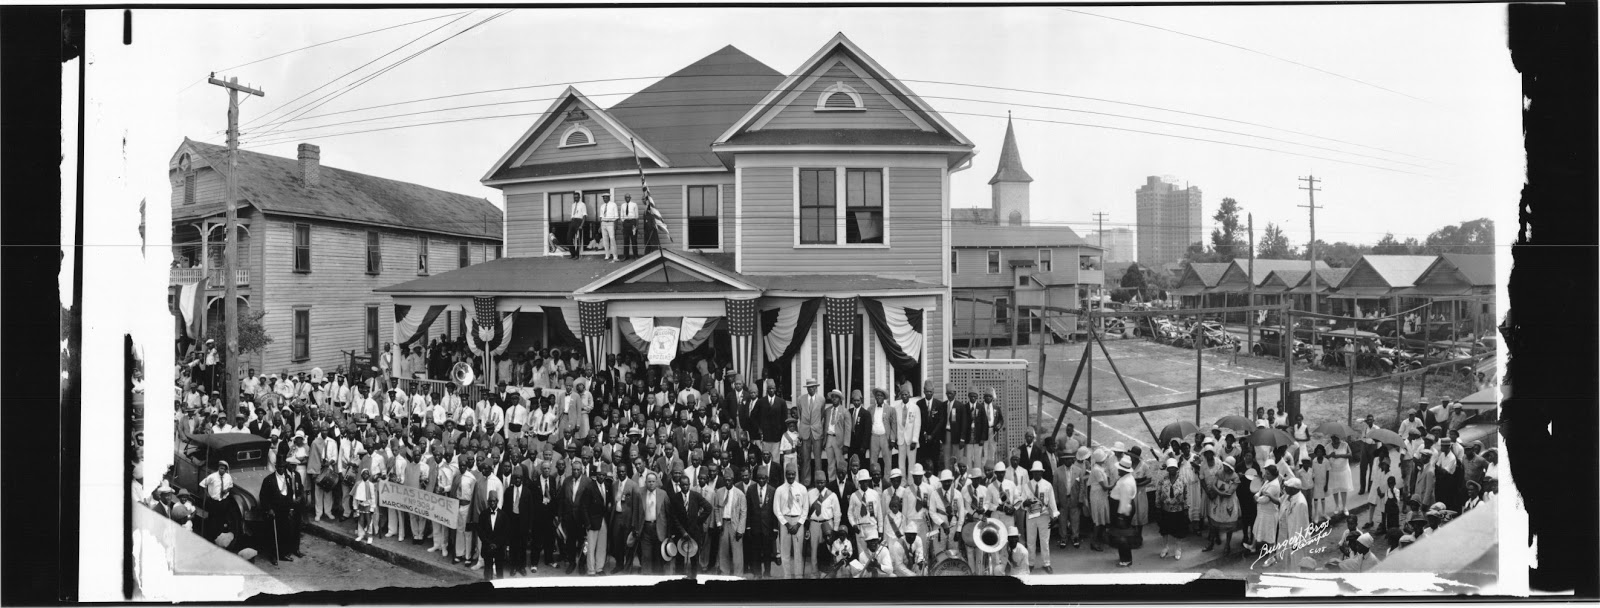 Central Avenue: The Long Rise and Fall of Tampa's 'Harlem of The South'